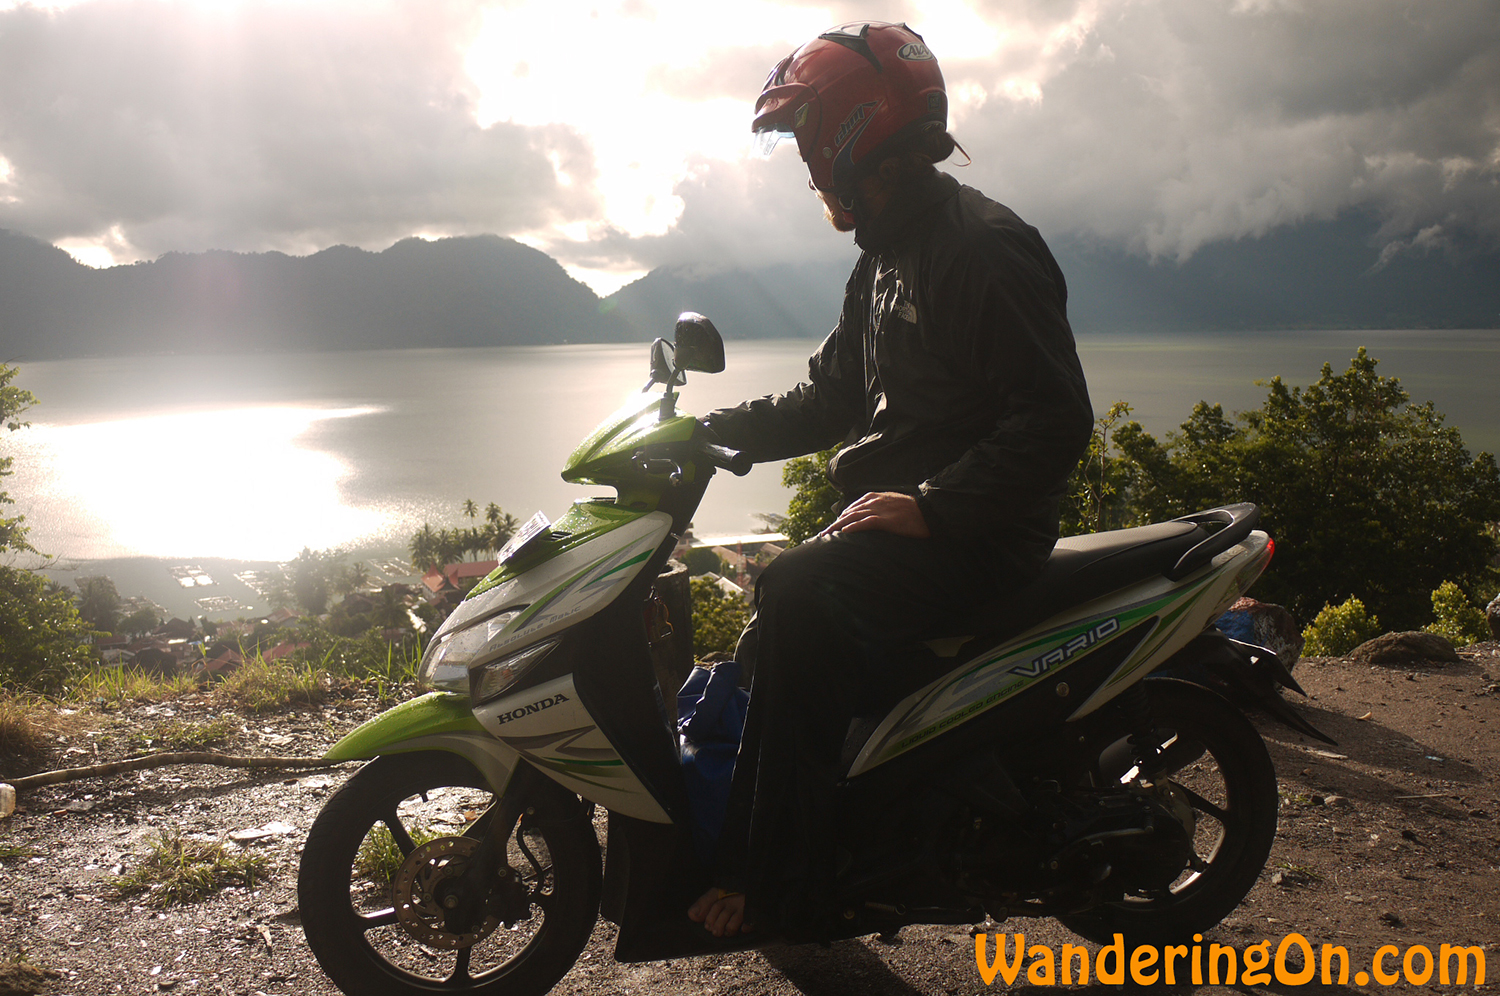 Brian admiring the view as the weather clears up in time for the drive home, West Sumatra, Indonesia